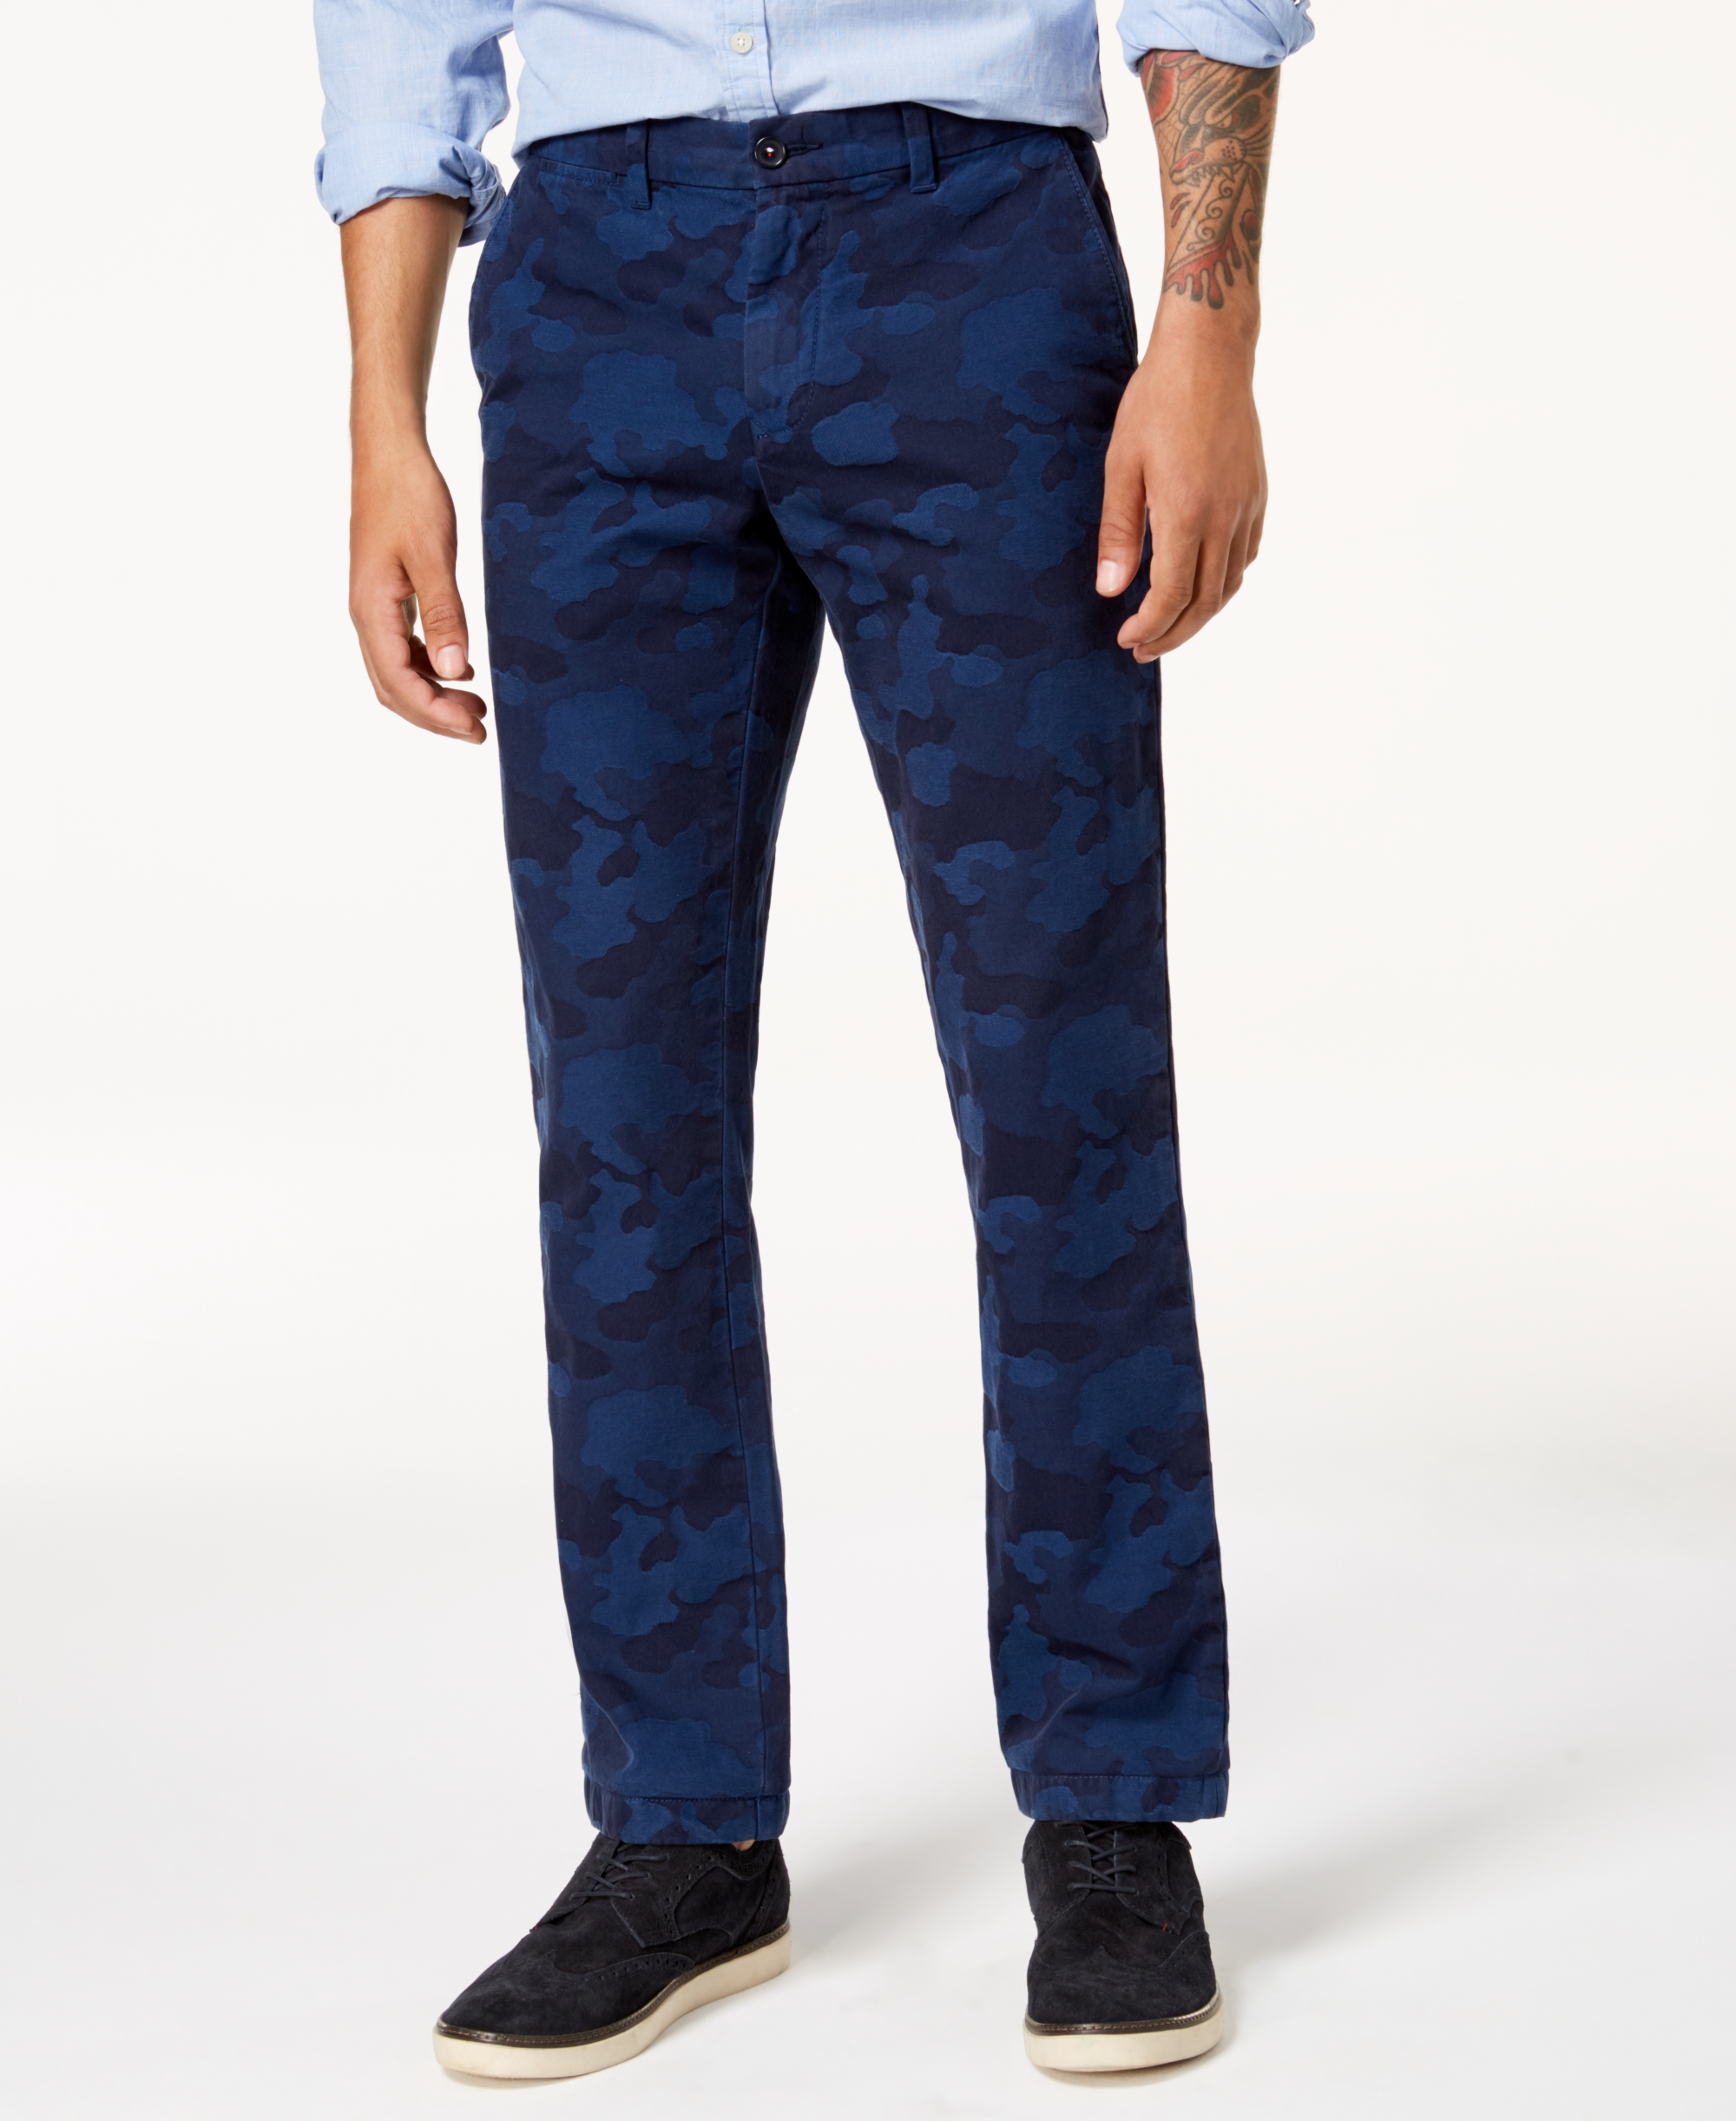 New-Tommy-Hilfiger-NEW-Blue-Mens-Size-33x30-Custom-Fit-Camo-Chinos-Pants-69